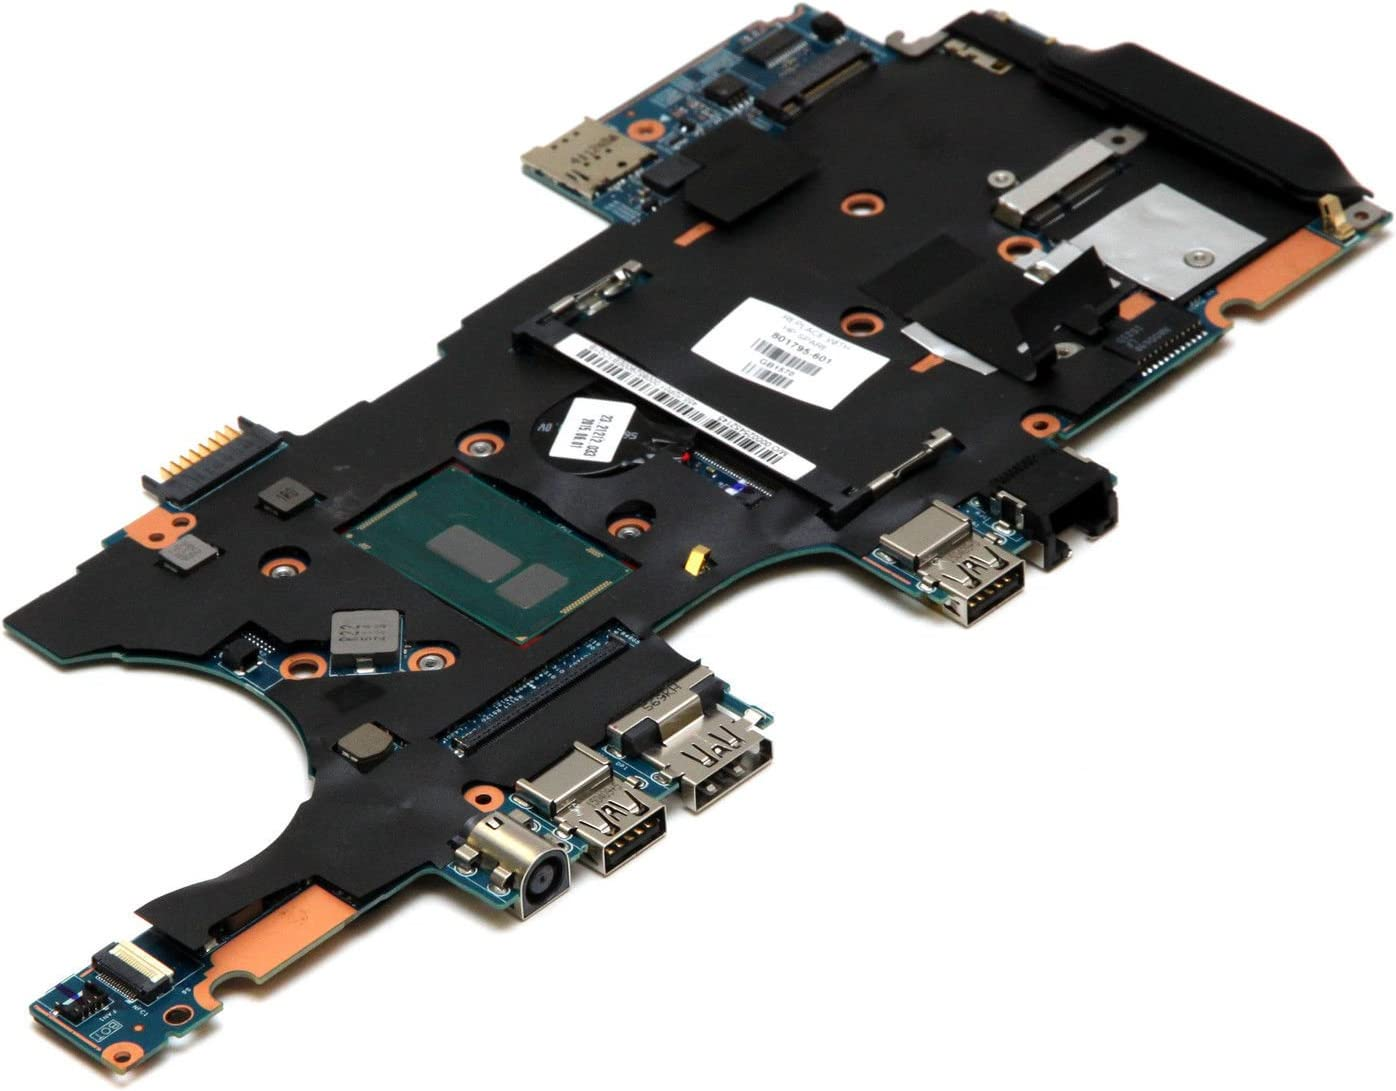 Amazon.com: HP Elitebook Revolve 810 G2 Motherboard i5-4200U ...